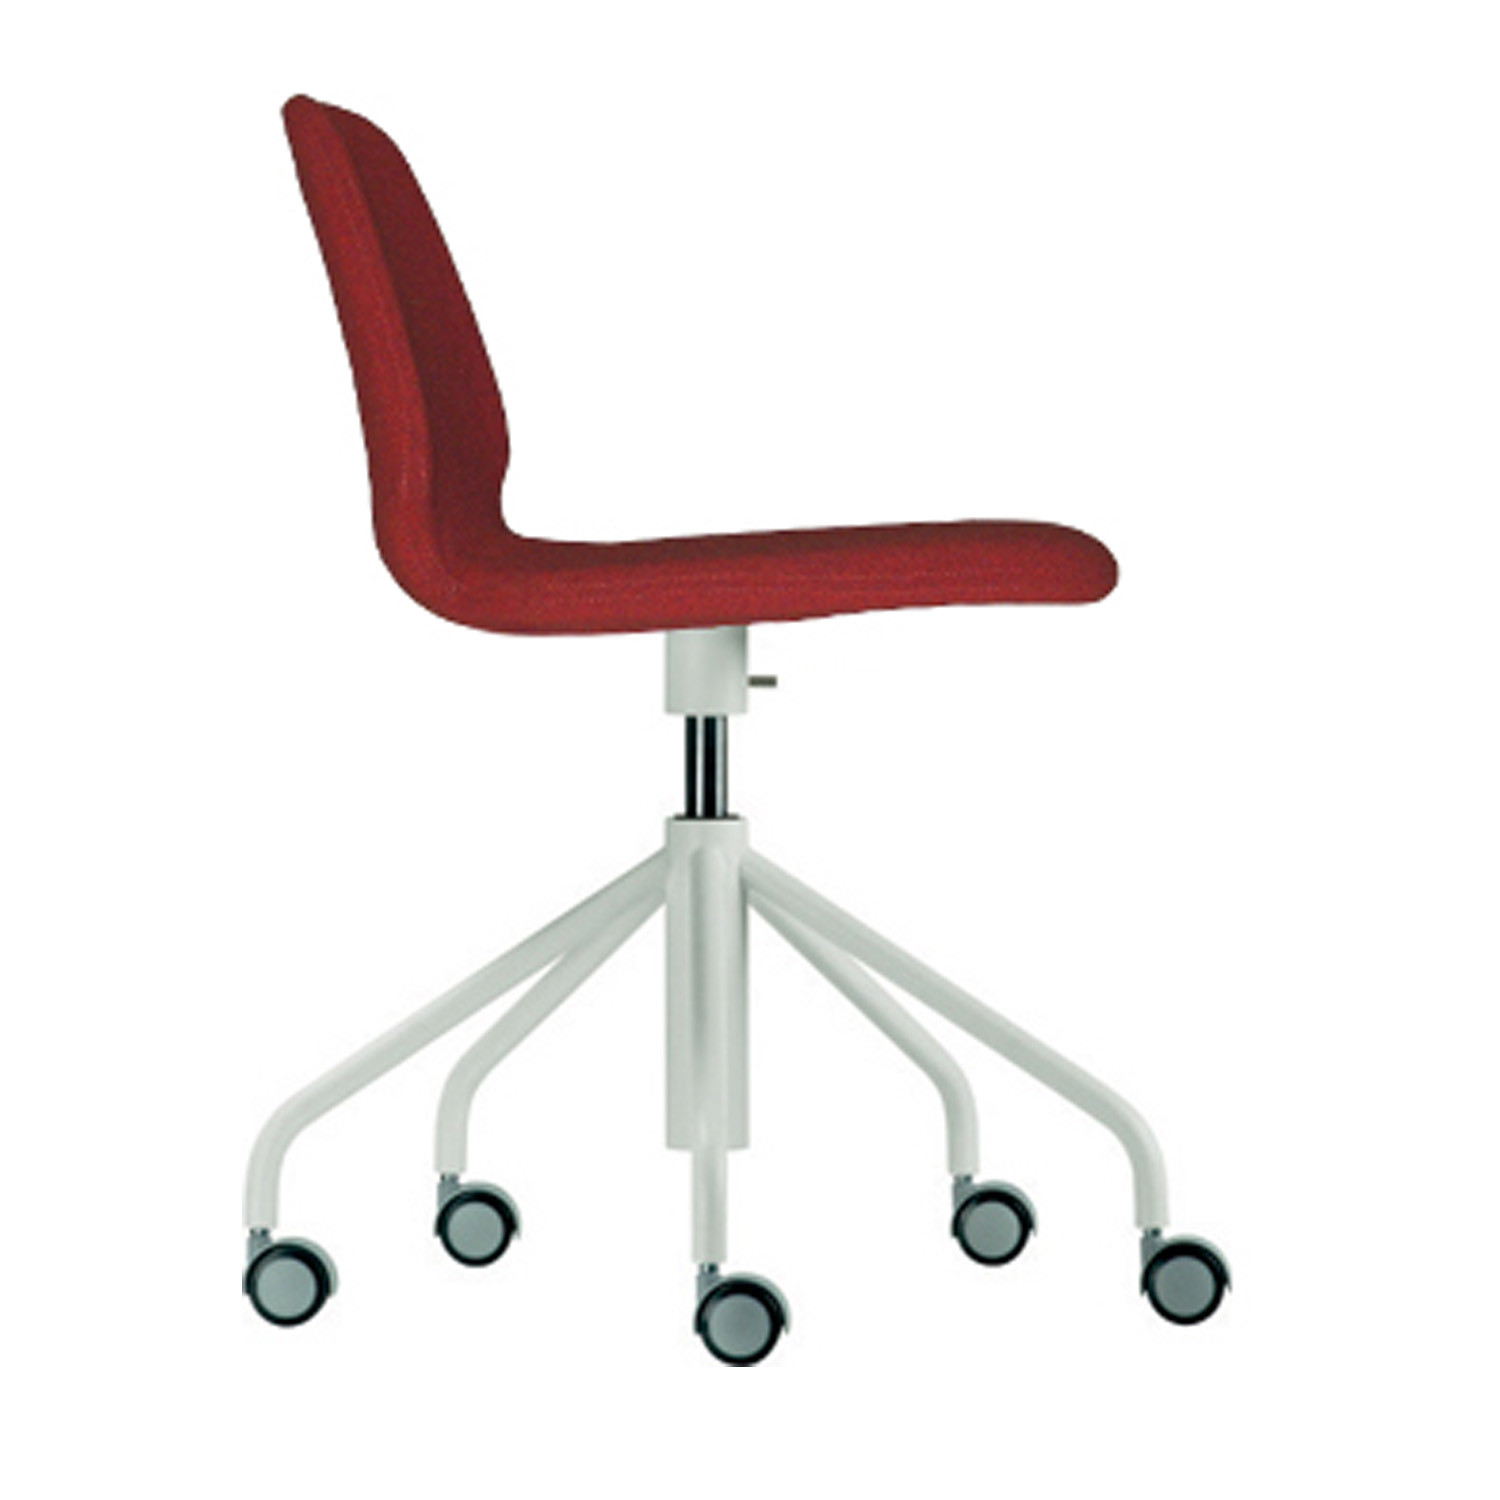 Tindari Studio - Height Adjustable 5-Star Swivel Base with castors